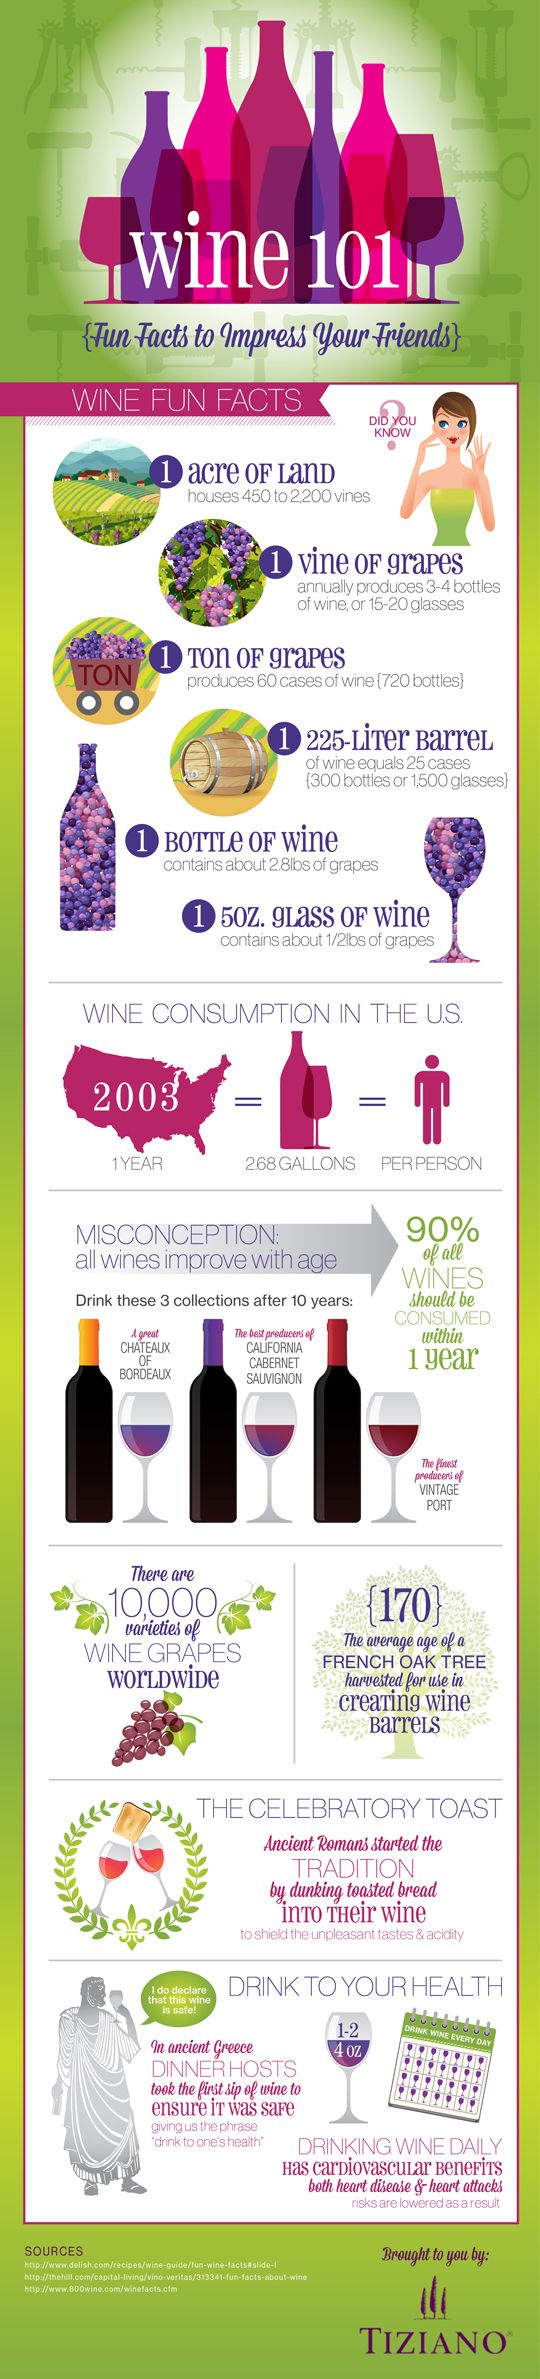 TizianoWine_Infographic_v3B-1_FunFacts-01